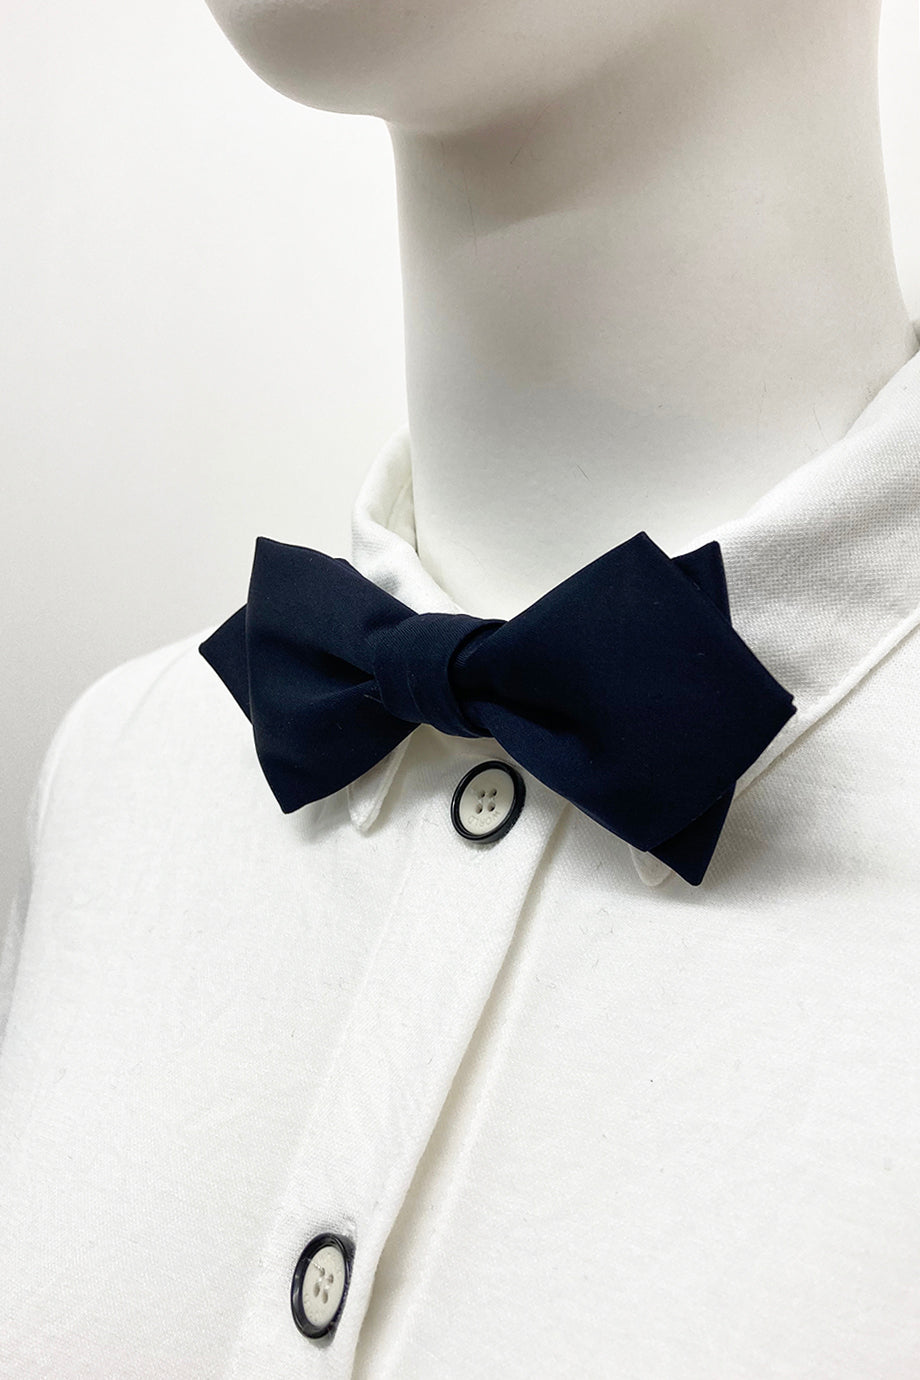 WORLD Diamond Point Bow Tie - Navy Satin